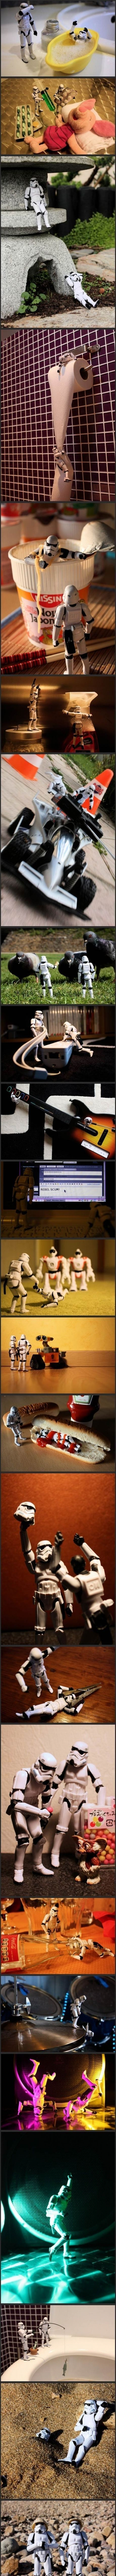 Storm troopers - This is something Seth would do & I would find in a random place so I could die of laughter. LOL.